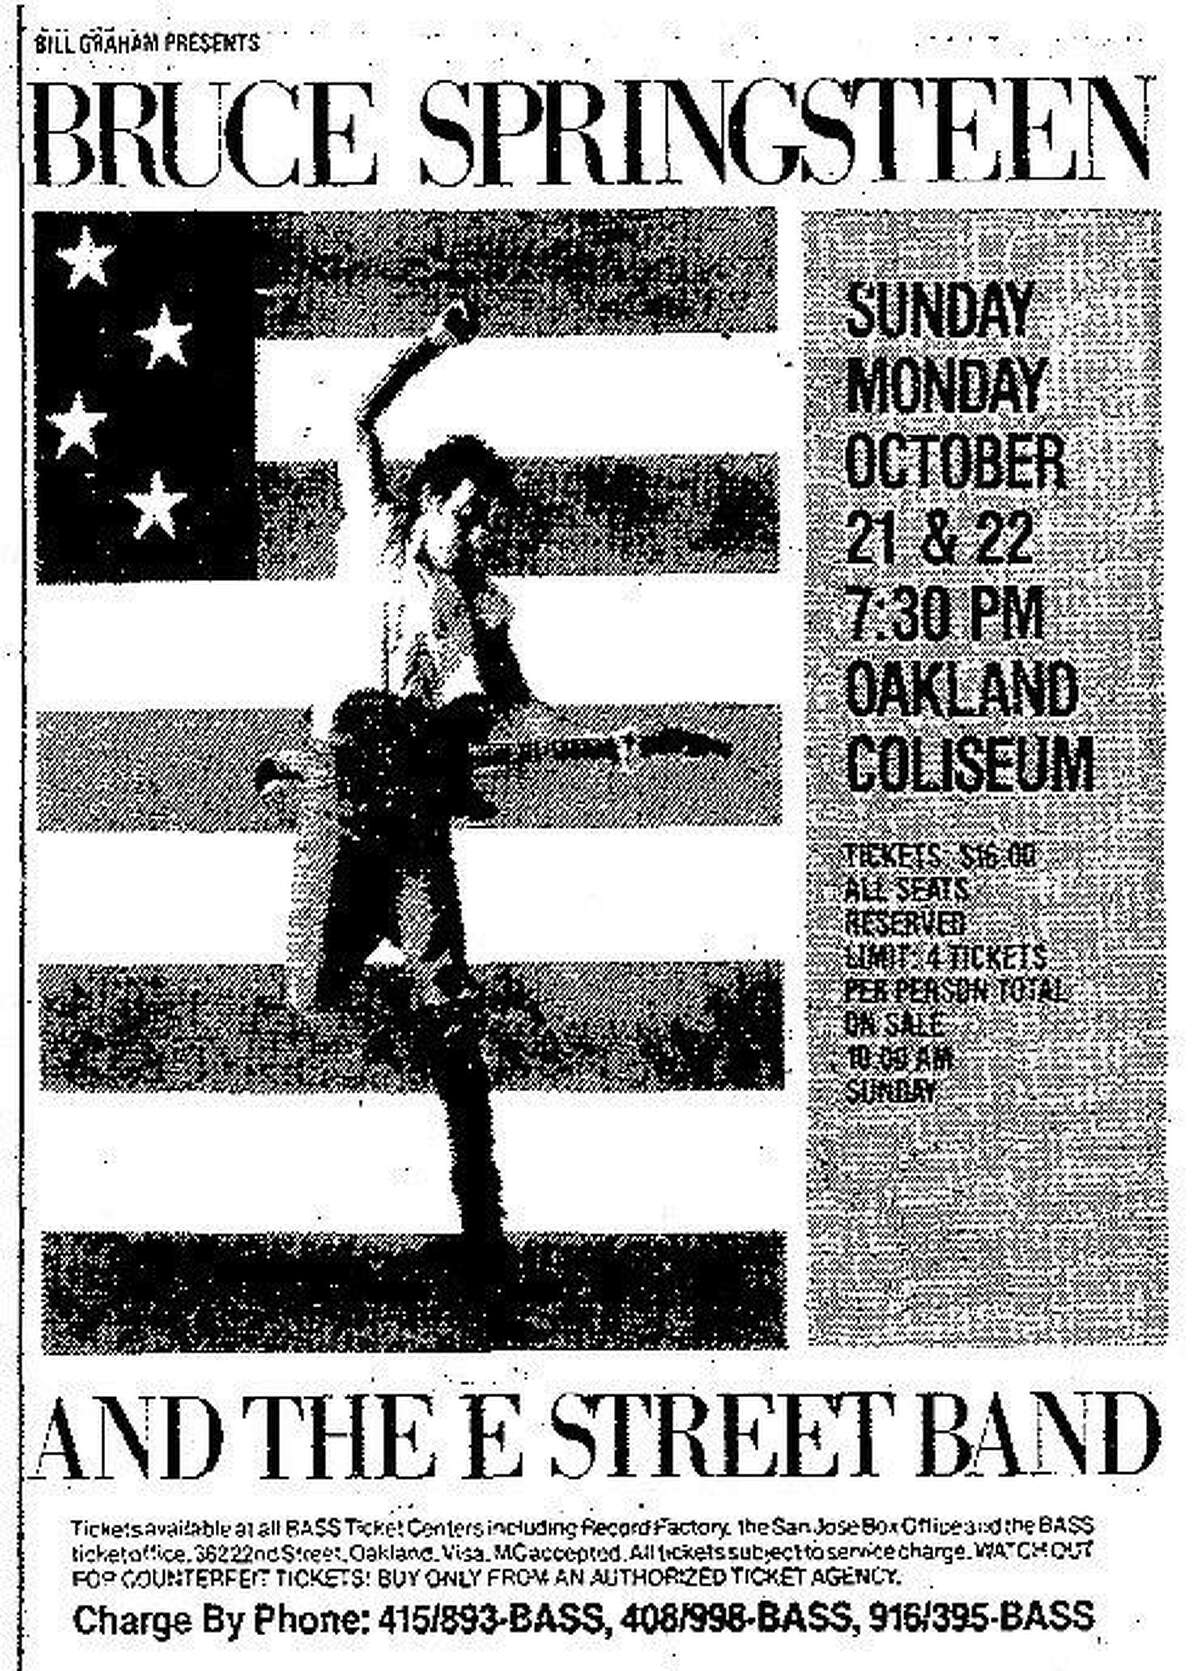 Before two sold out shows in Oakland the Chronicle sent reporter Joel Selvin and photographer Steve Ringman to give fans a preview of Bruce Springteen and the E Street Band's show